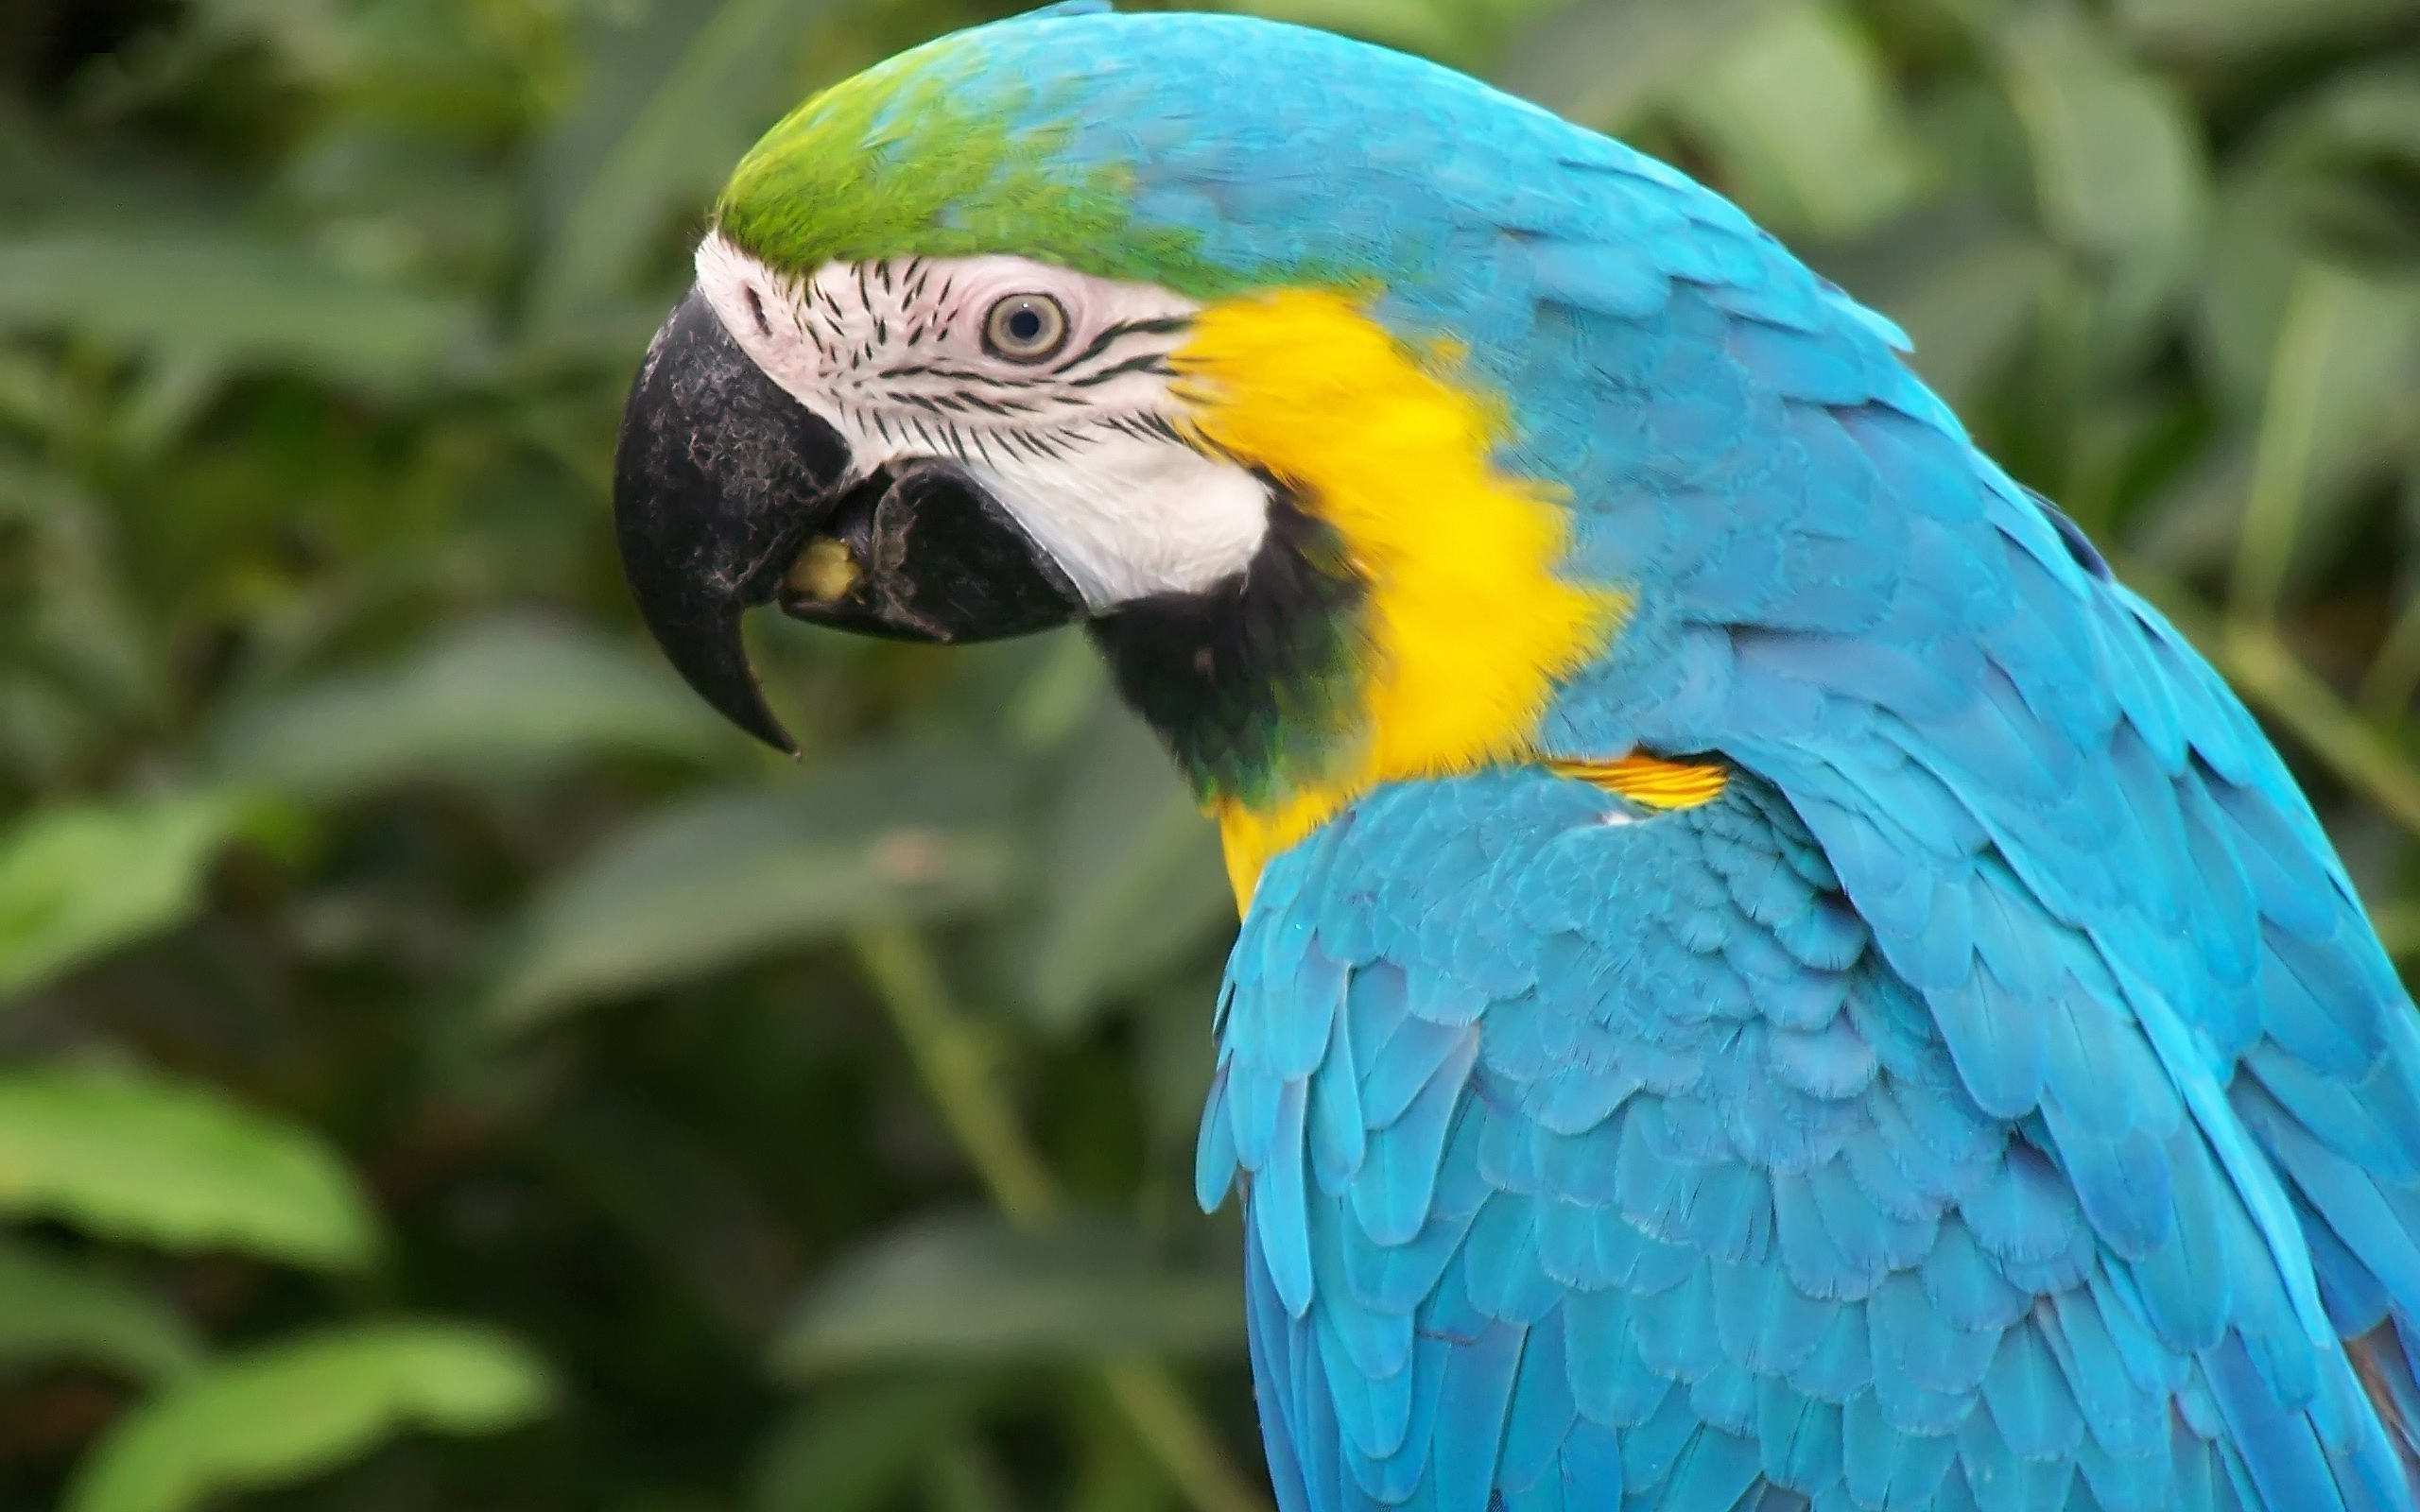 macaw parrot images